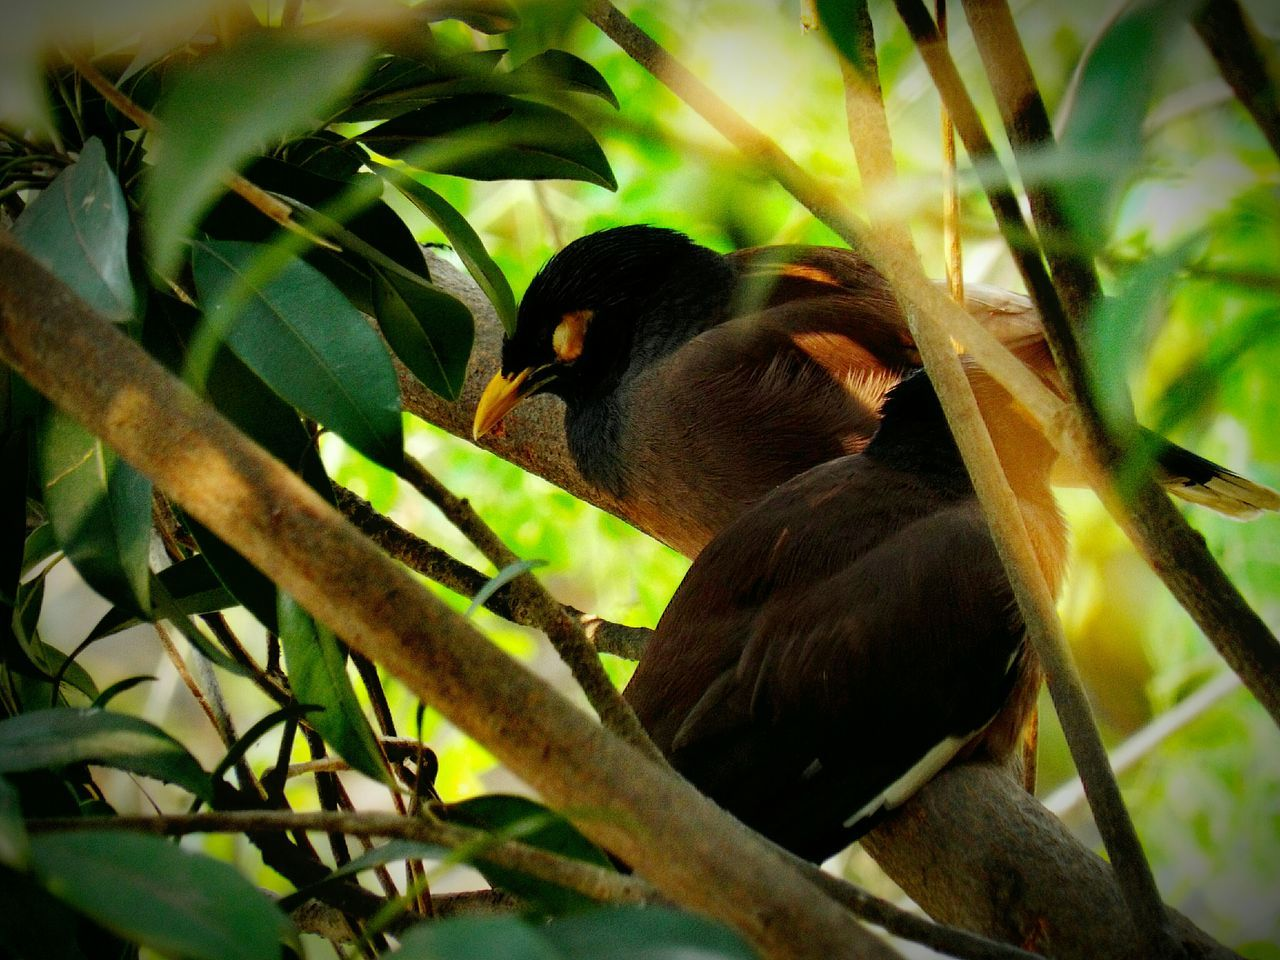 Birds Couple Of Birds Indian Myna Birds Of EyeEm  Bird Watching Birds Eye View Birds_collection Bird Photography Nature Beautiful Outdoors Hello World Best  Cute Animals Nature At Its Best Cute♡ 2016 EyeEm Best Shots New On Eyeem Cute Bird🐥 Birds🐦⛅ Photos Around You Photo Colorful Bestoftheday